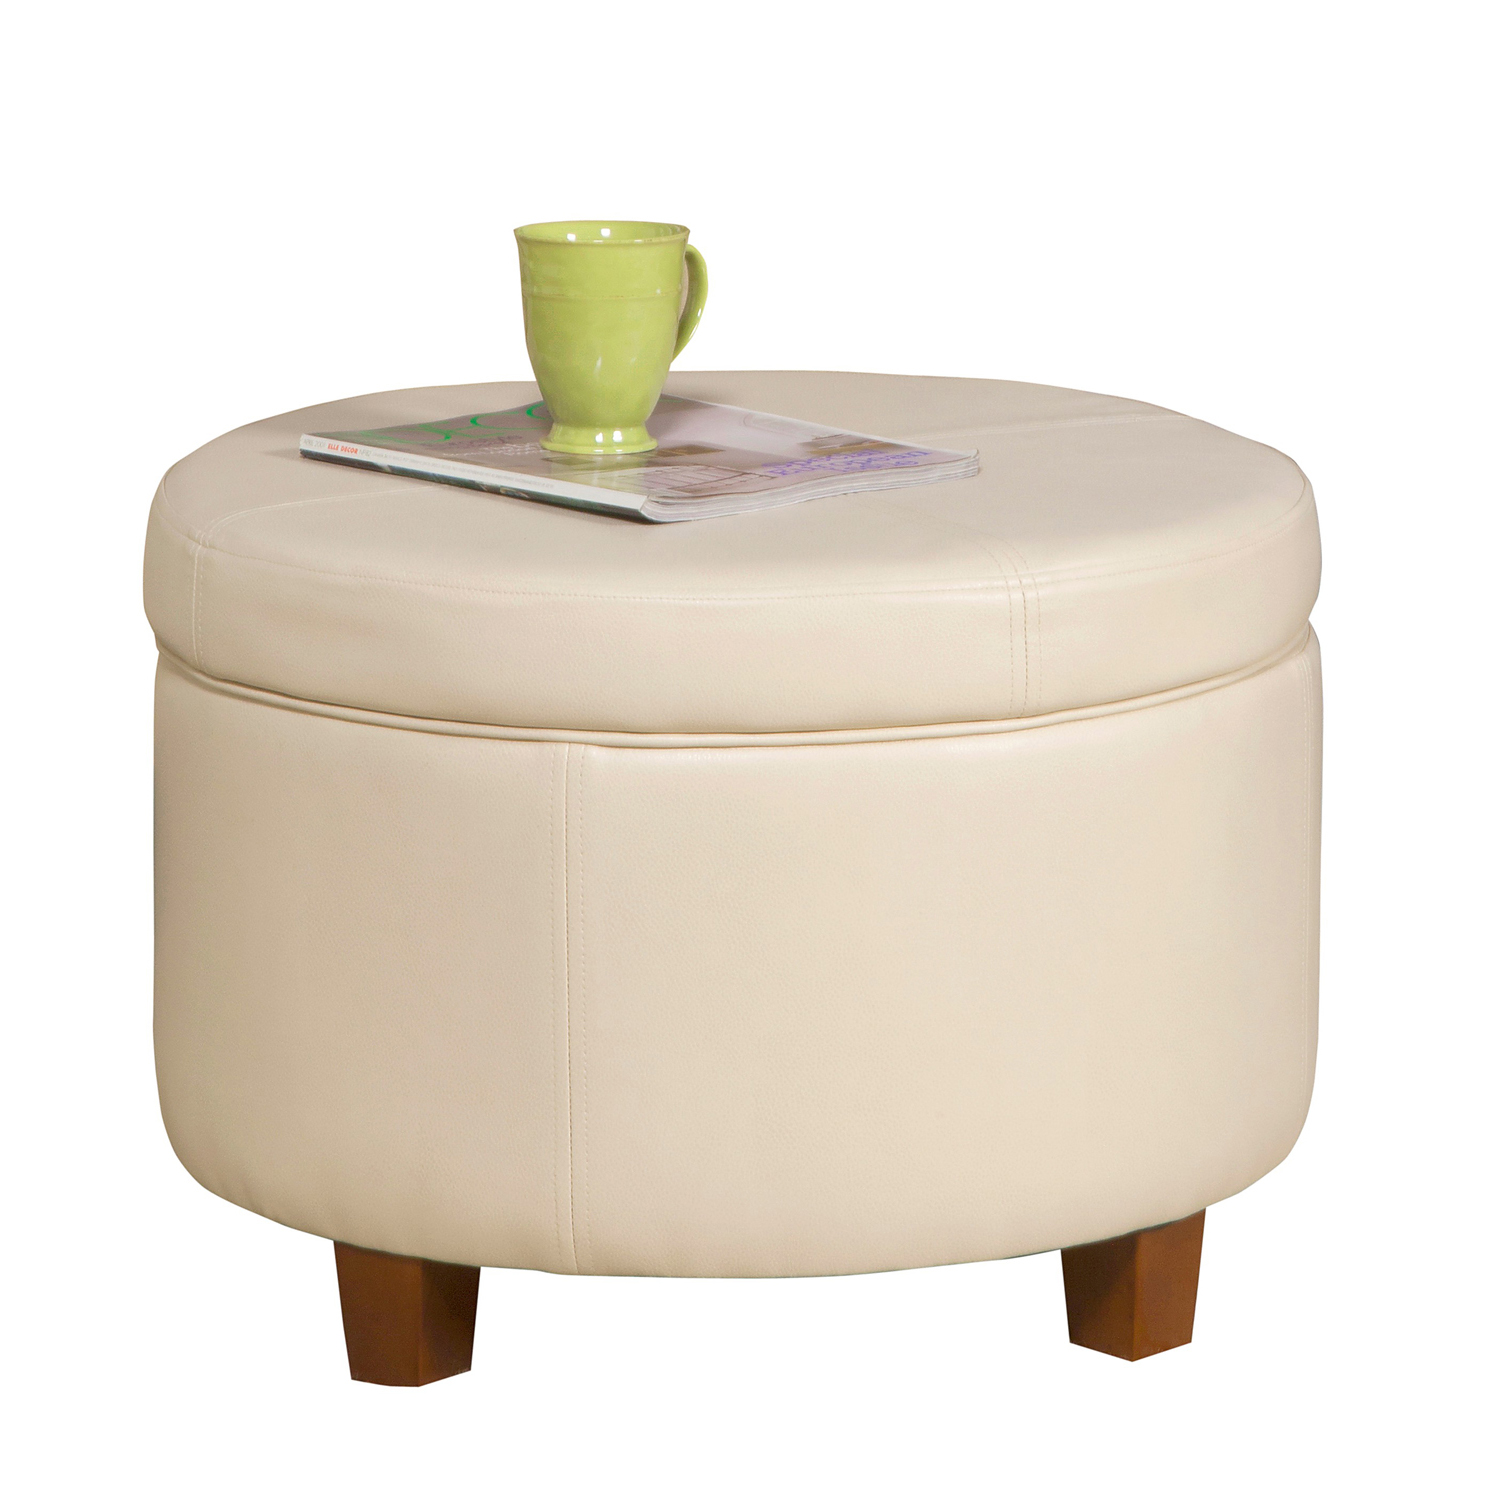 Large Cream Round Storage Ottoman